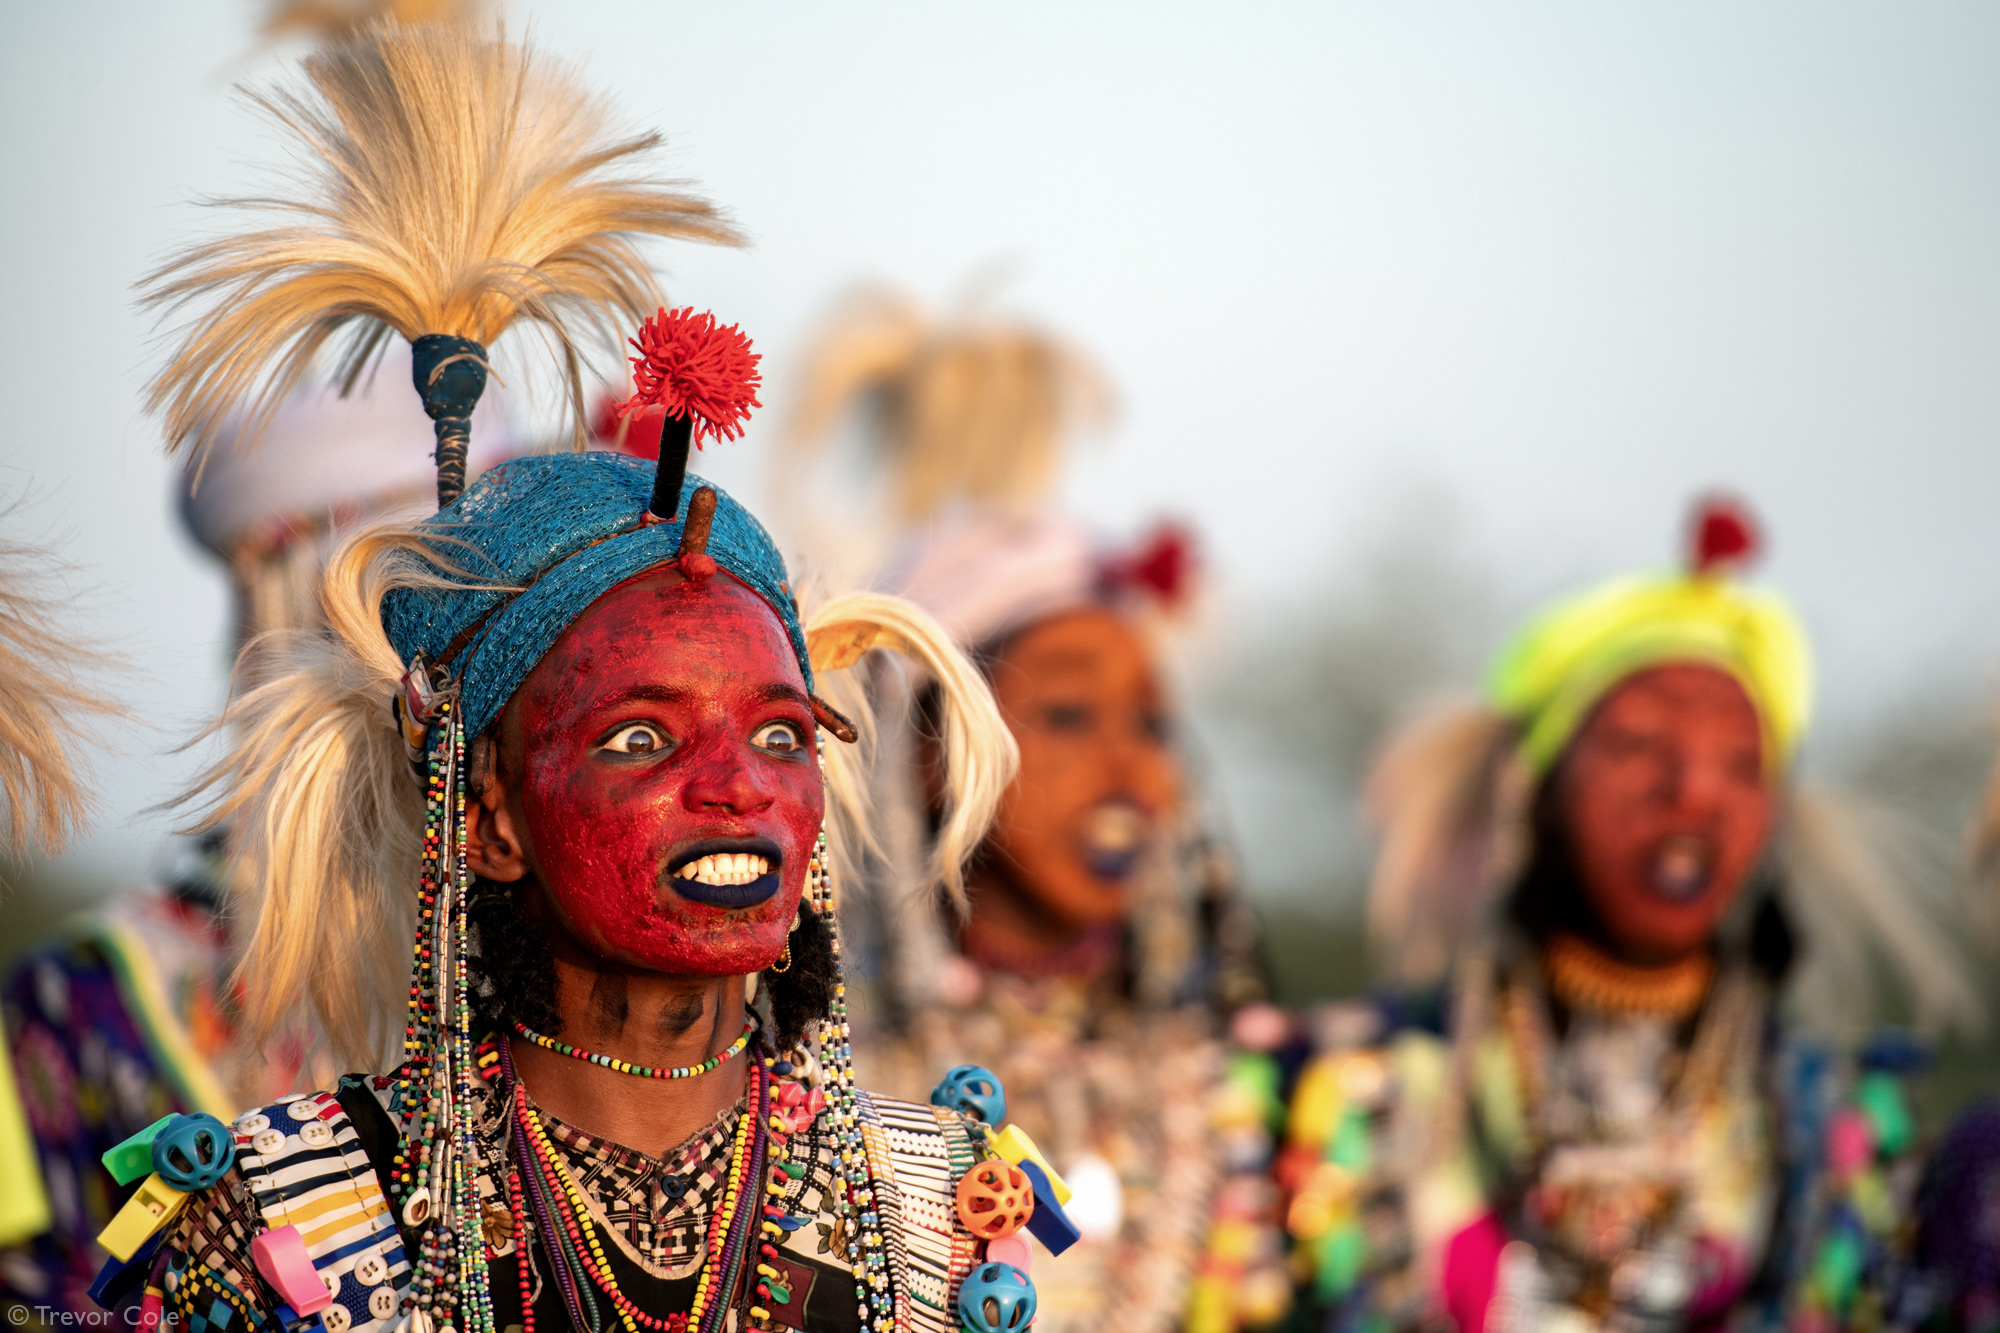 Man with painted face during Gerewol festival in Chad